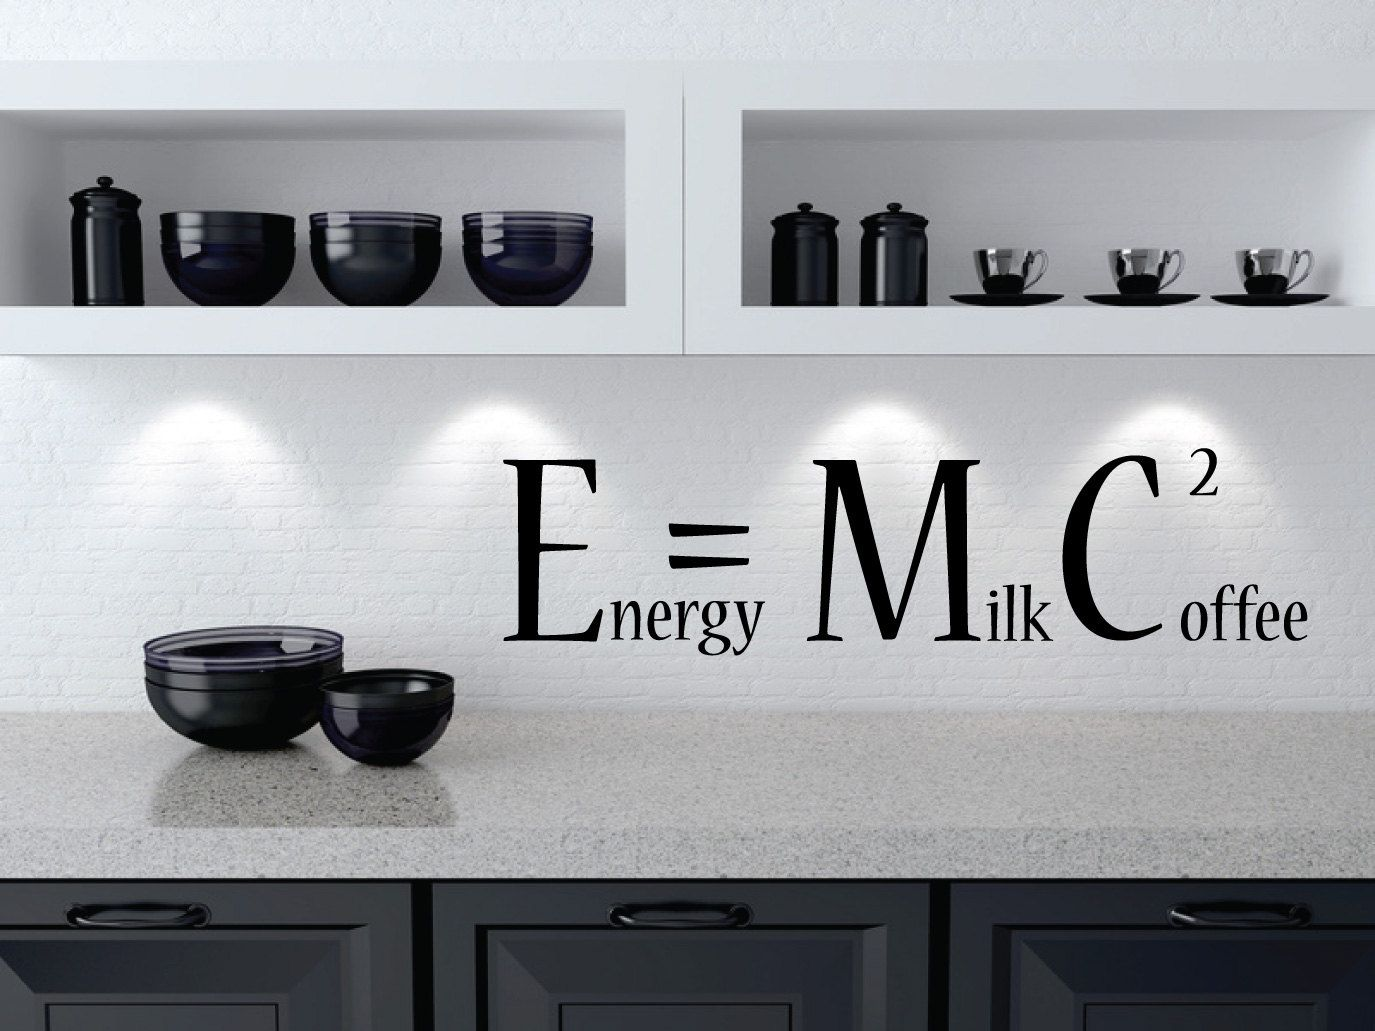 coffee wall sticker energy milk coffee squared e mc2 coffee wall sticker energy milk coffee squared e mc2 removable wall decal funny kitchen wall decor coffee decor